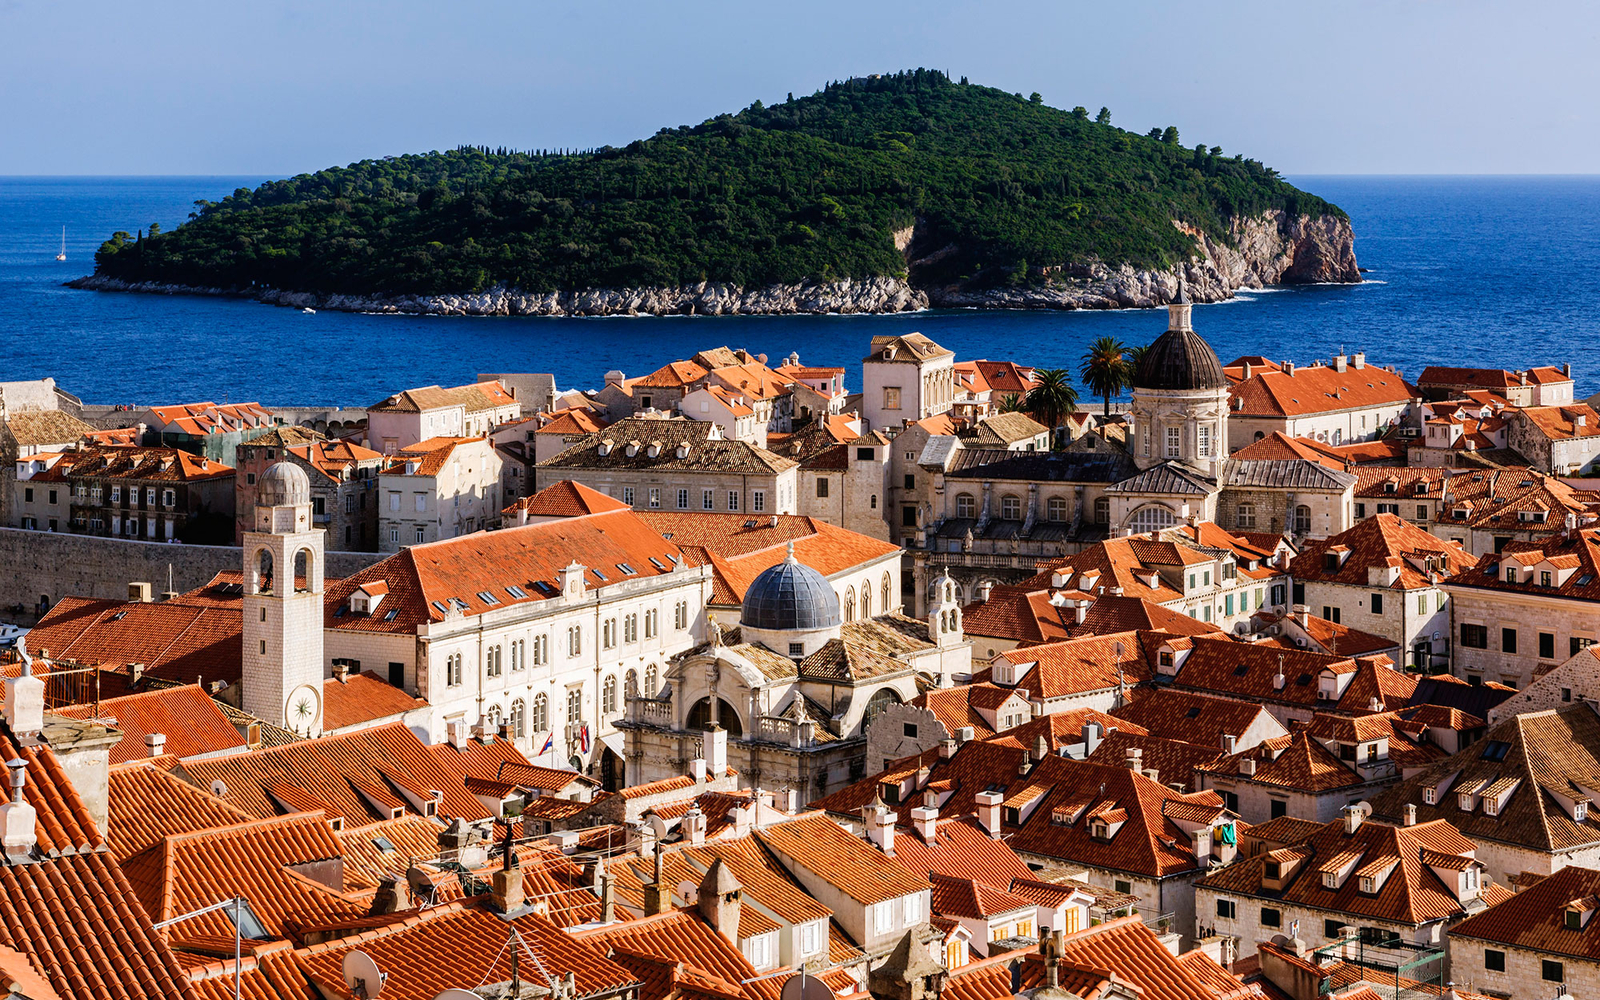 201402-w-worlds-most-romantic-cities-dubrovnik